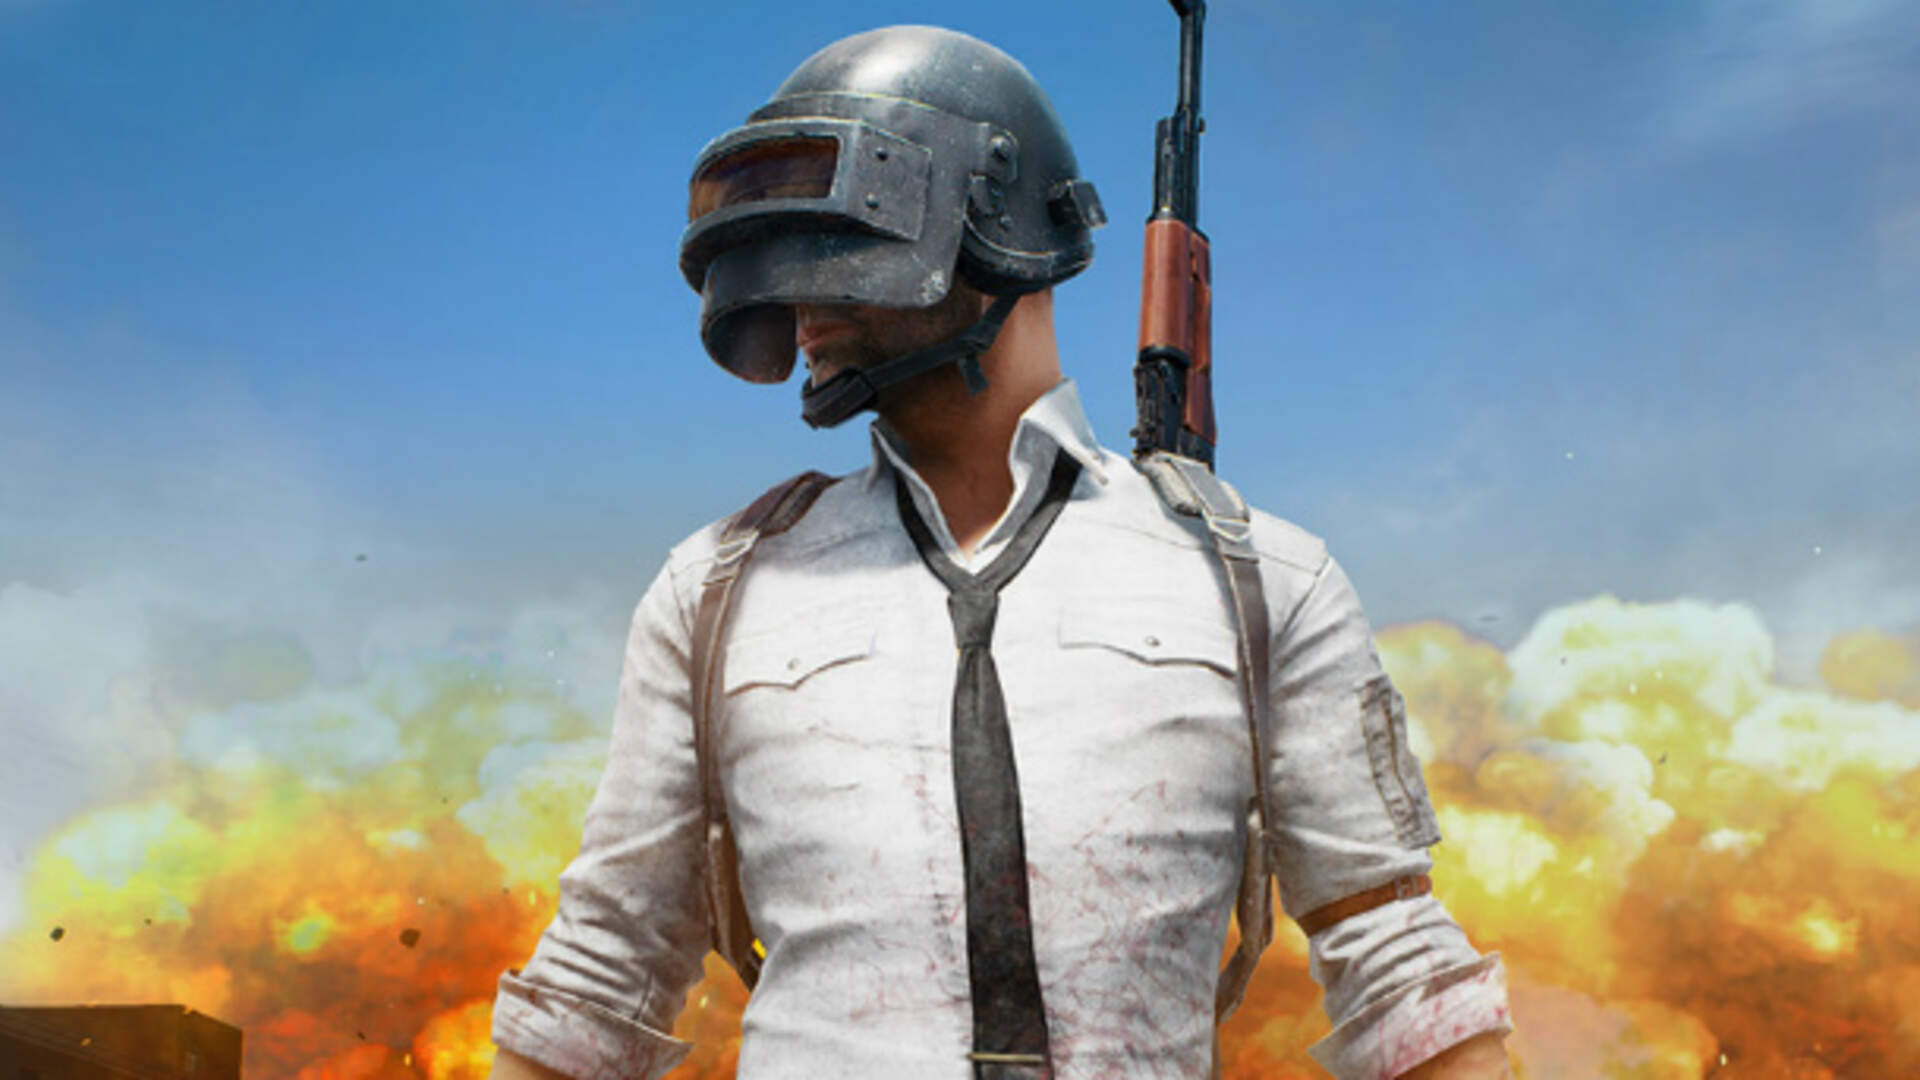 PlayerUnknown's Battlegrounds Pushed Back to Q4 2017